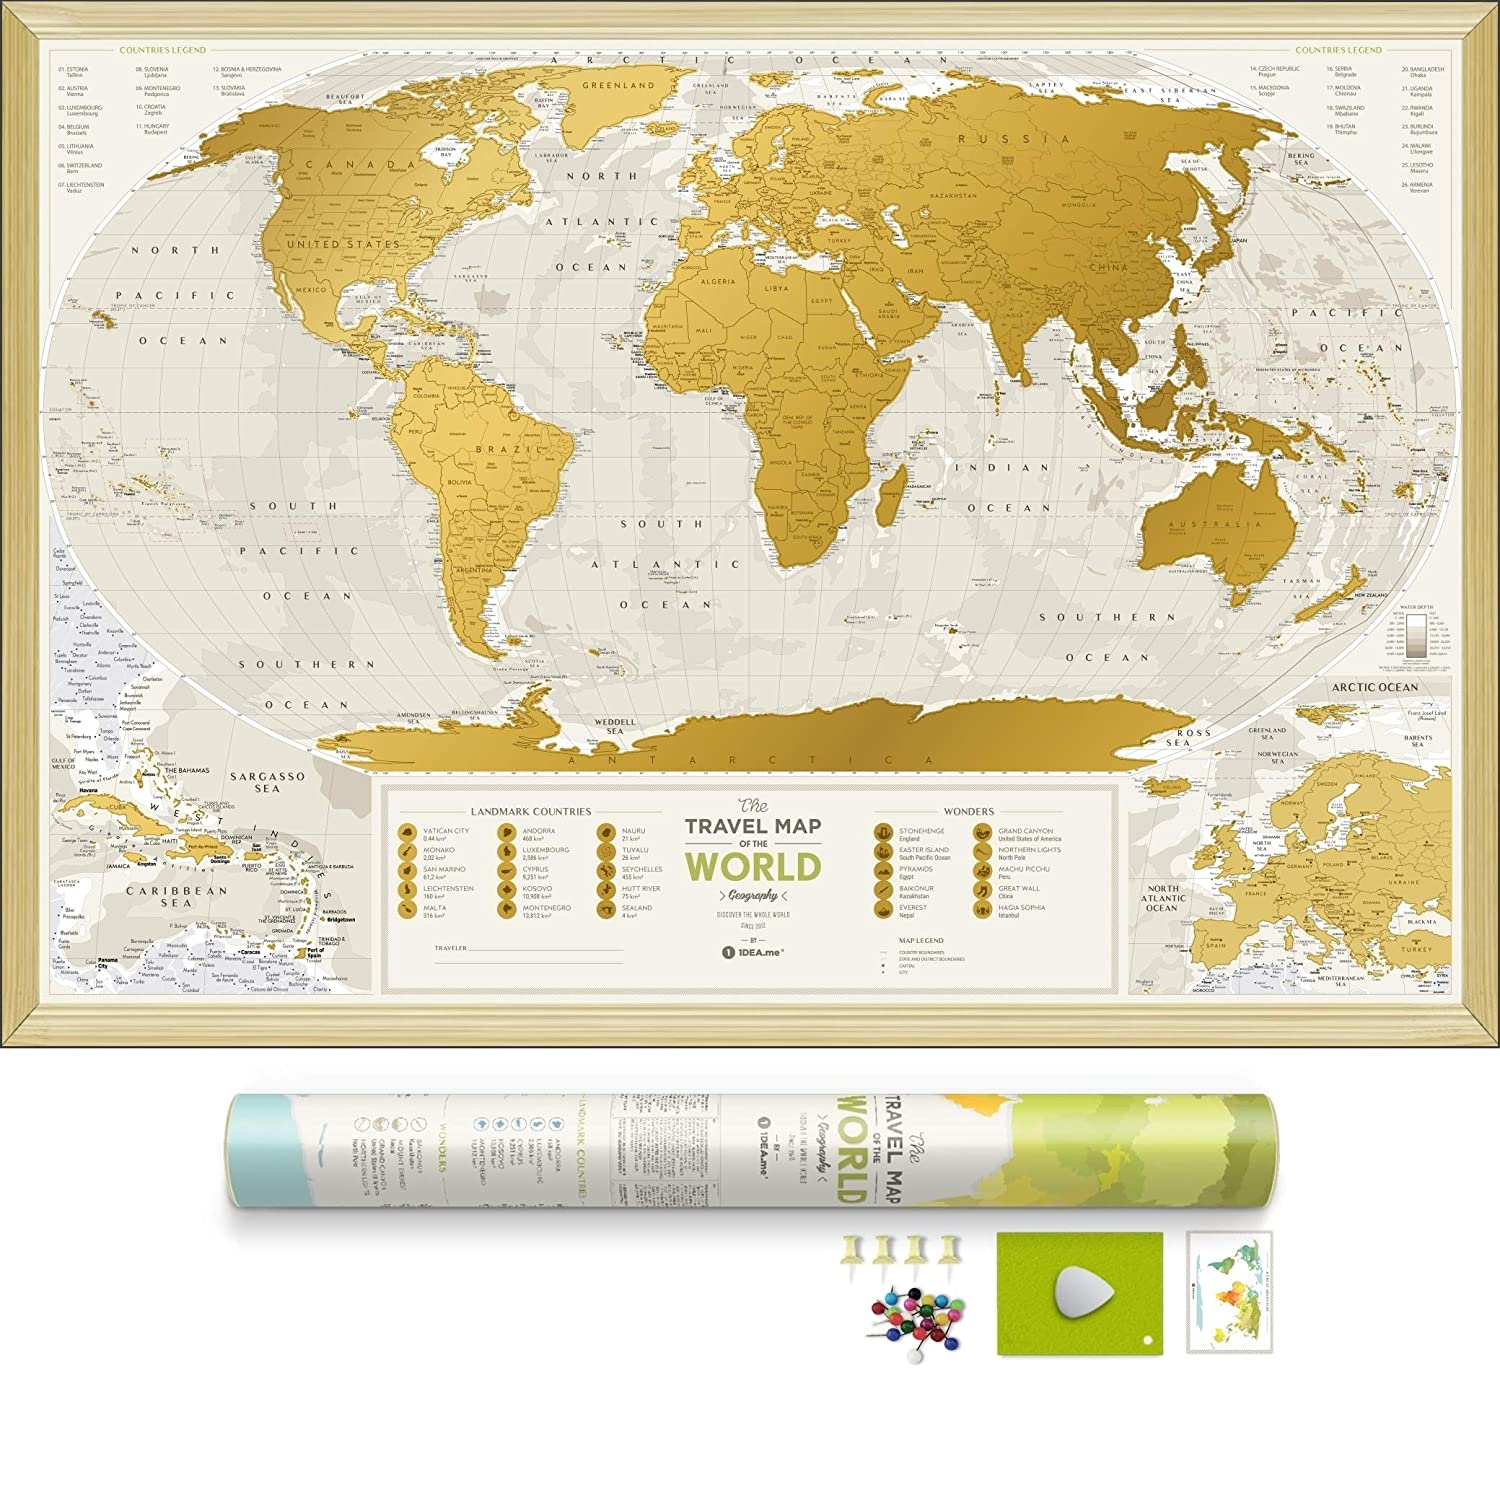 Detailed Scratch Off World Map - Premium Edition - 34.6 x 23.6 - Large Places I've Been Travel Map - You Can Scratch Off Over 10 000 Cities and Places by 1DEA.me GEOW